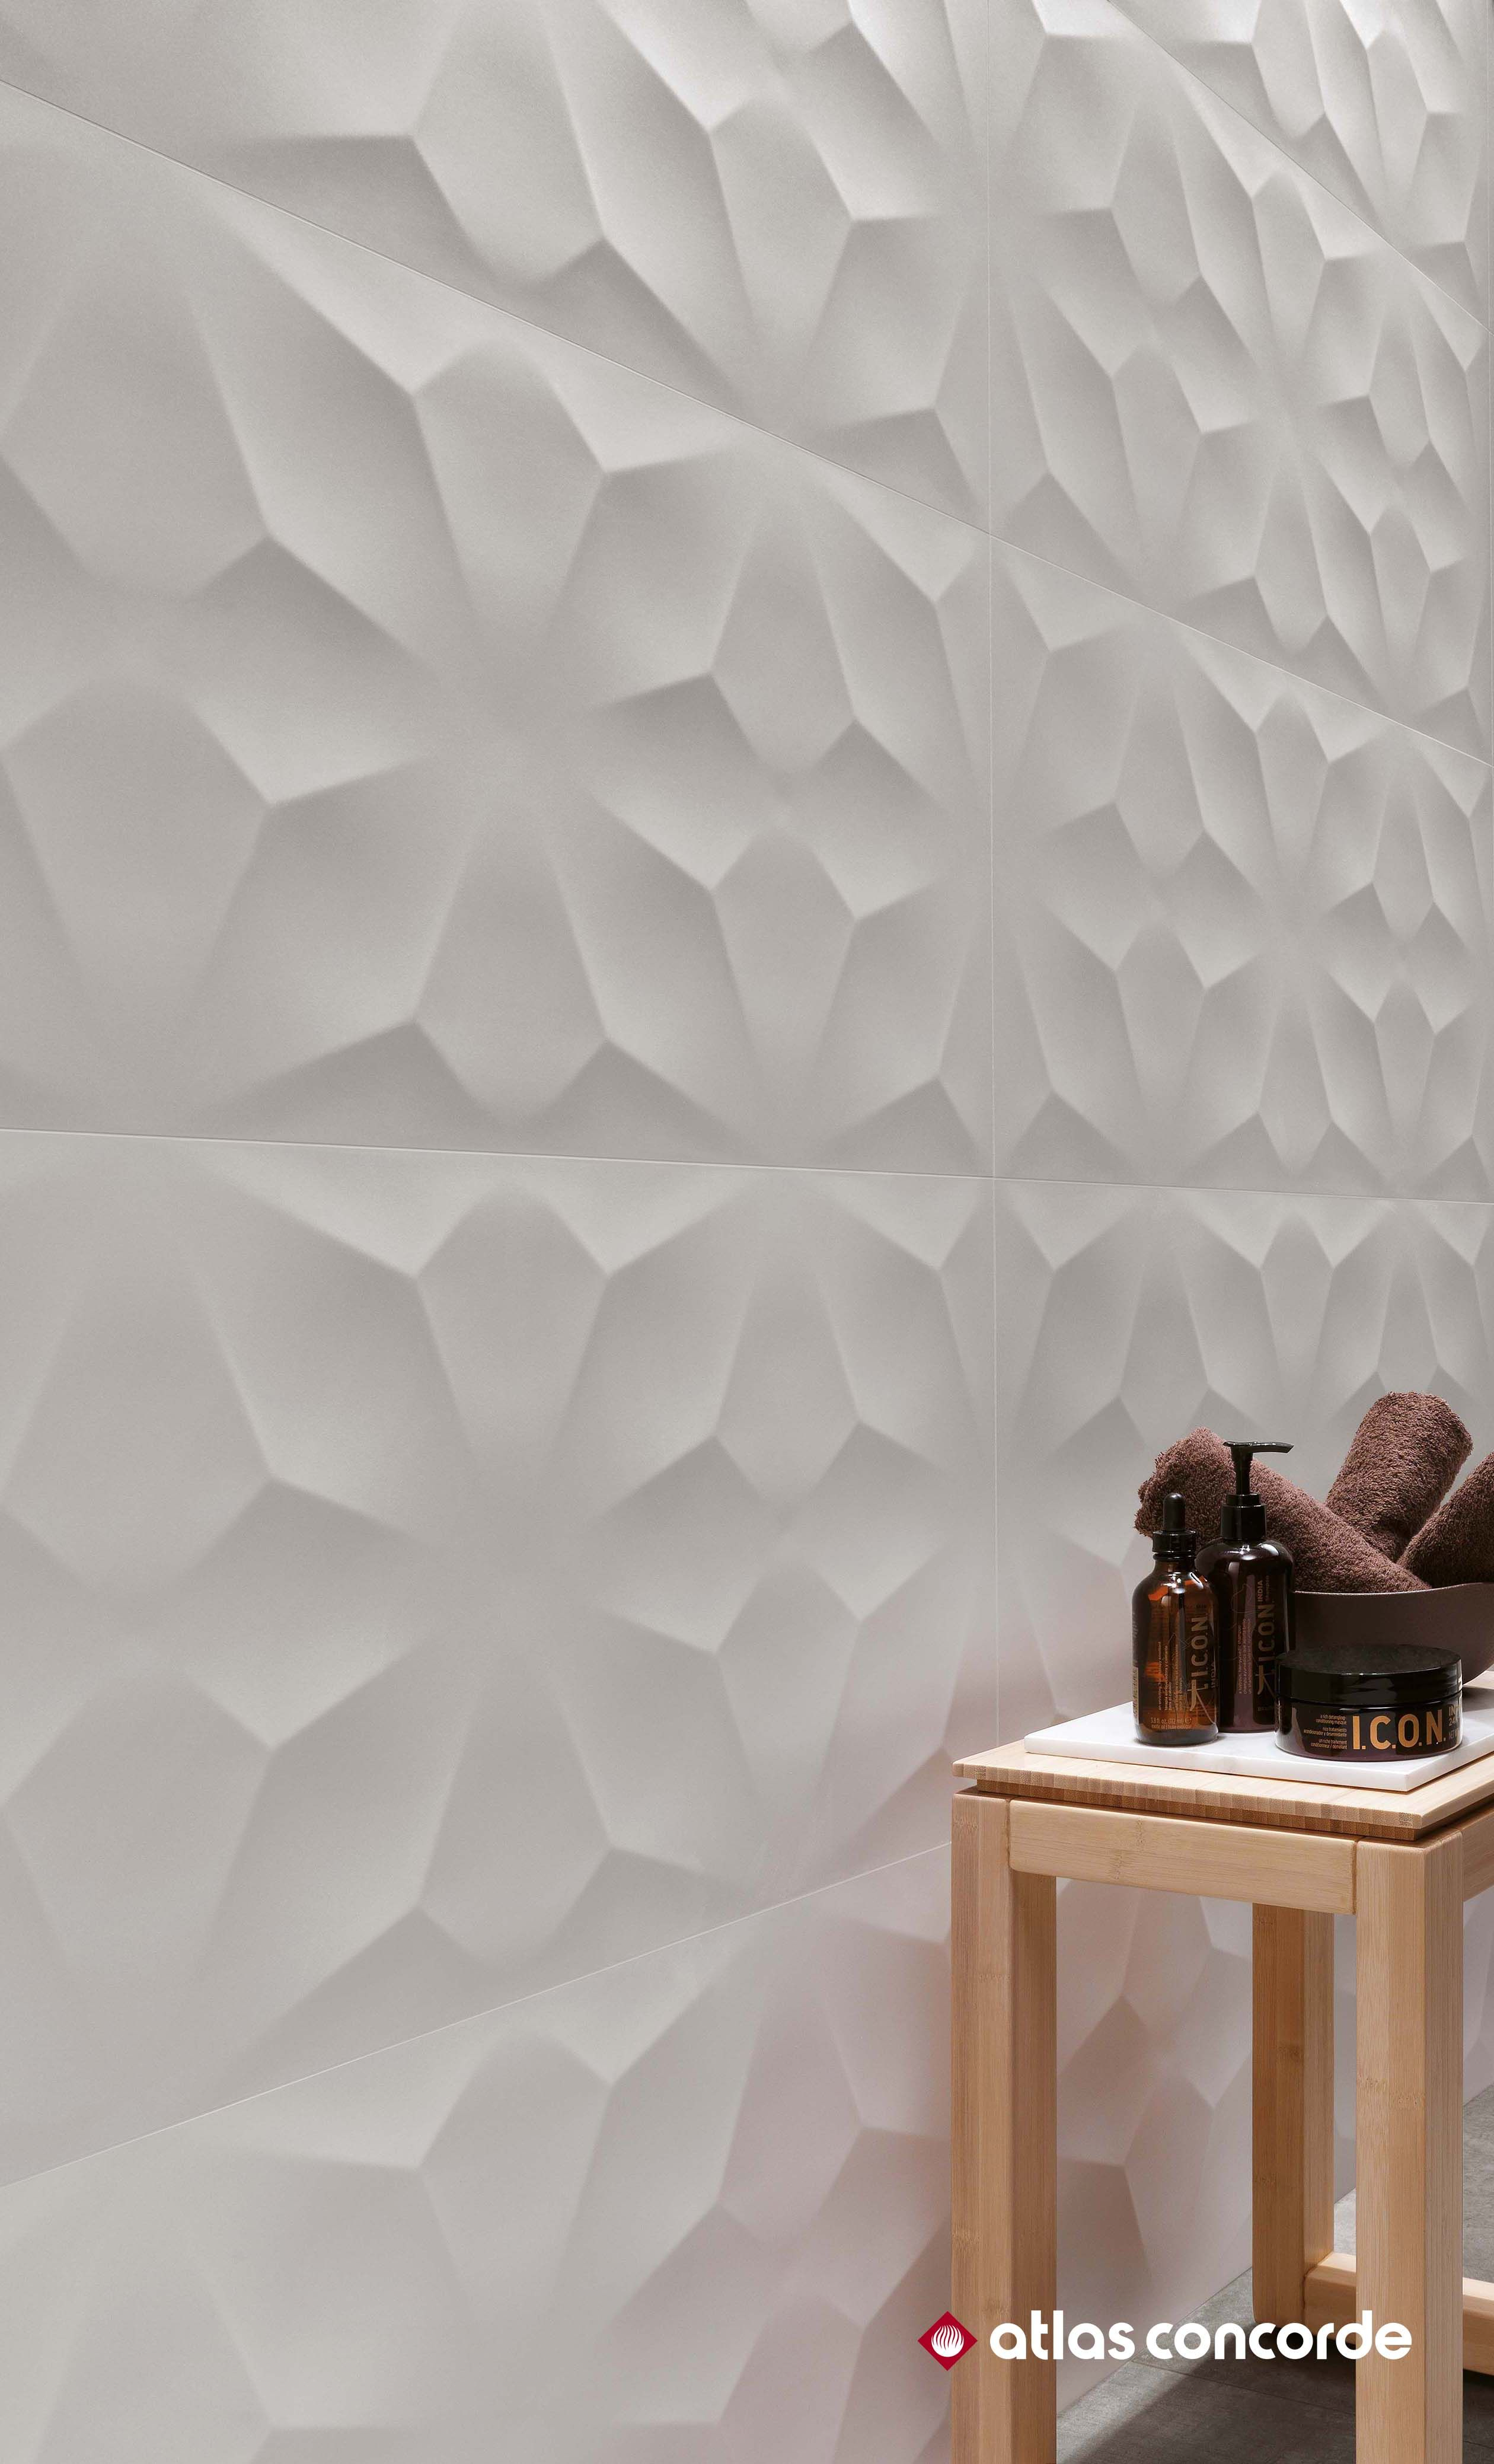 minimal and contemporary walls are styled by refined design  - minimal and contemporary walls are styled by refined design textures forthreedimensional walls able